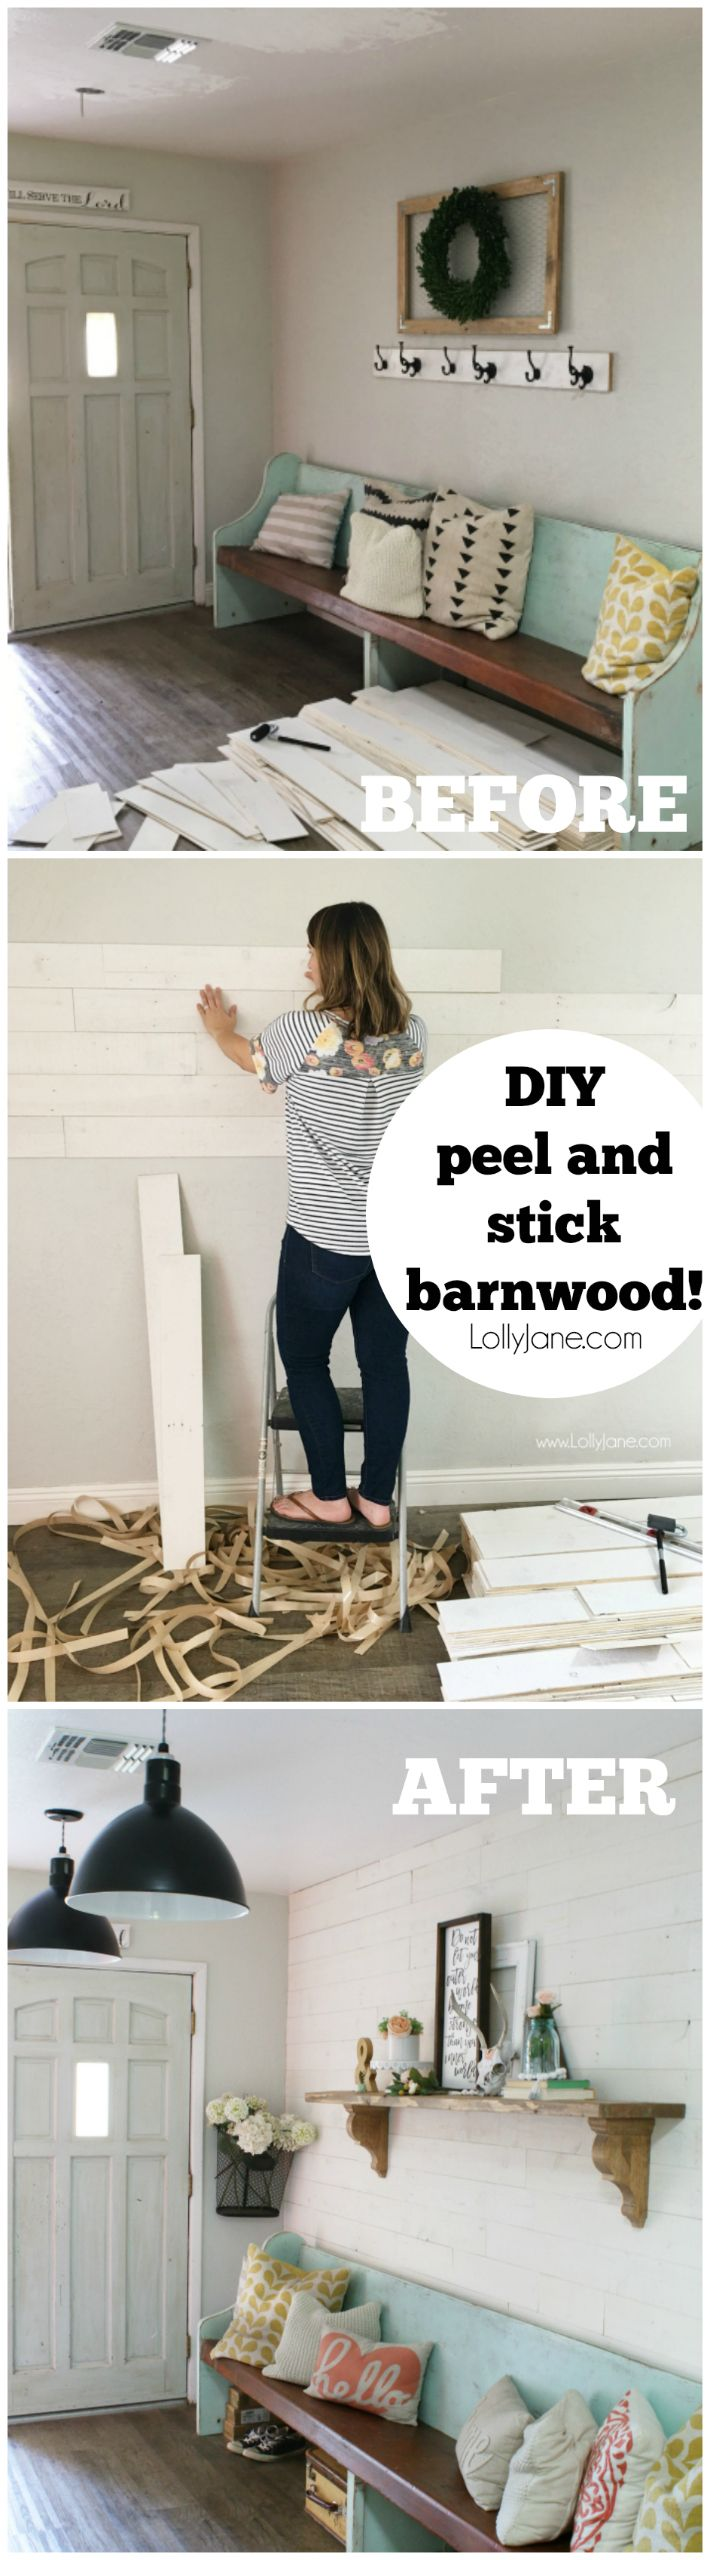 Loving this DIY peel and stick barnwood wall treatment!! Can you believe this real barnwood is so easy to install!?